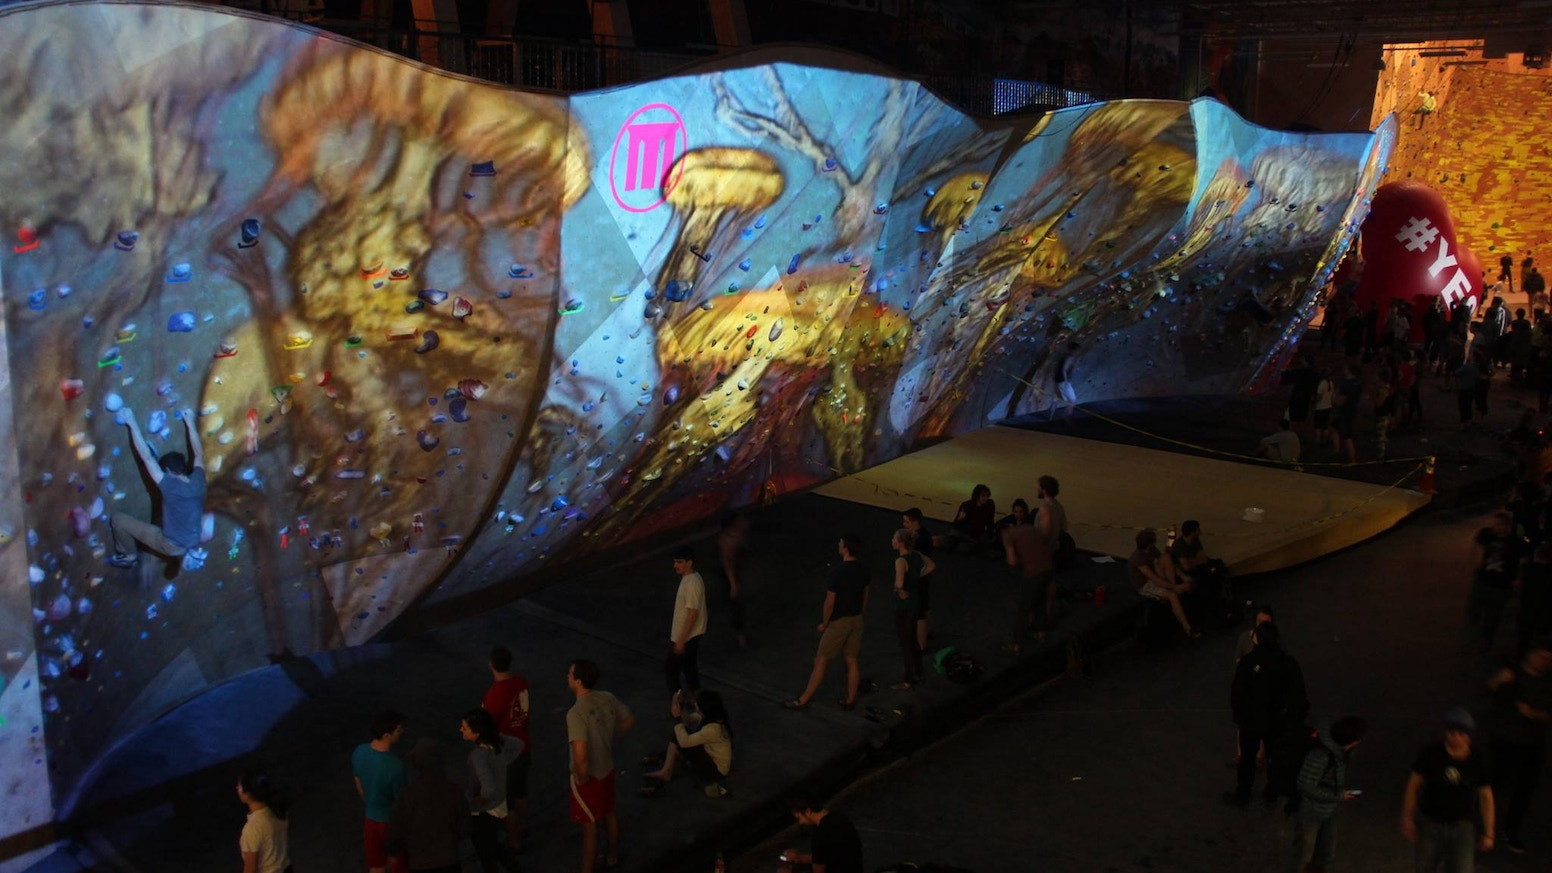 An interactive community experience at the Somerville Brooklyn Boulders. Interact and control the video with your smartphone.